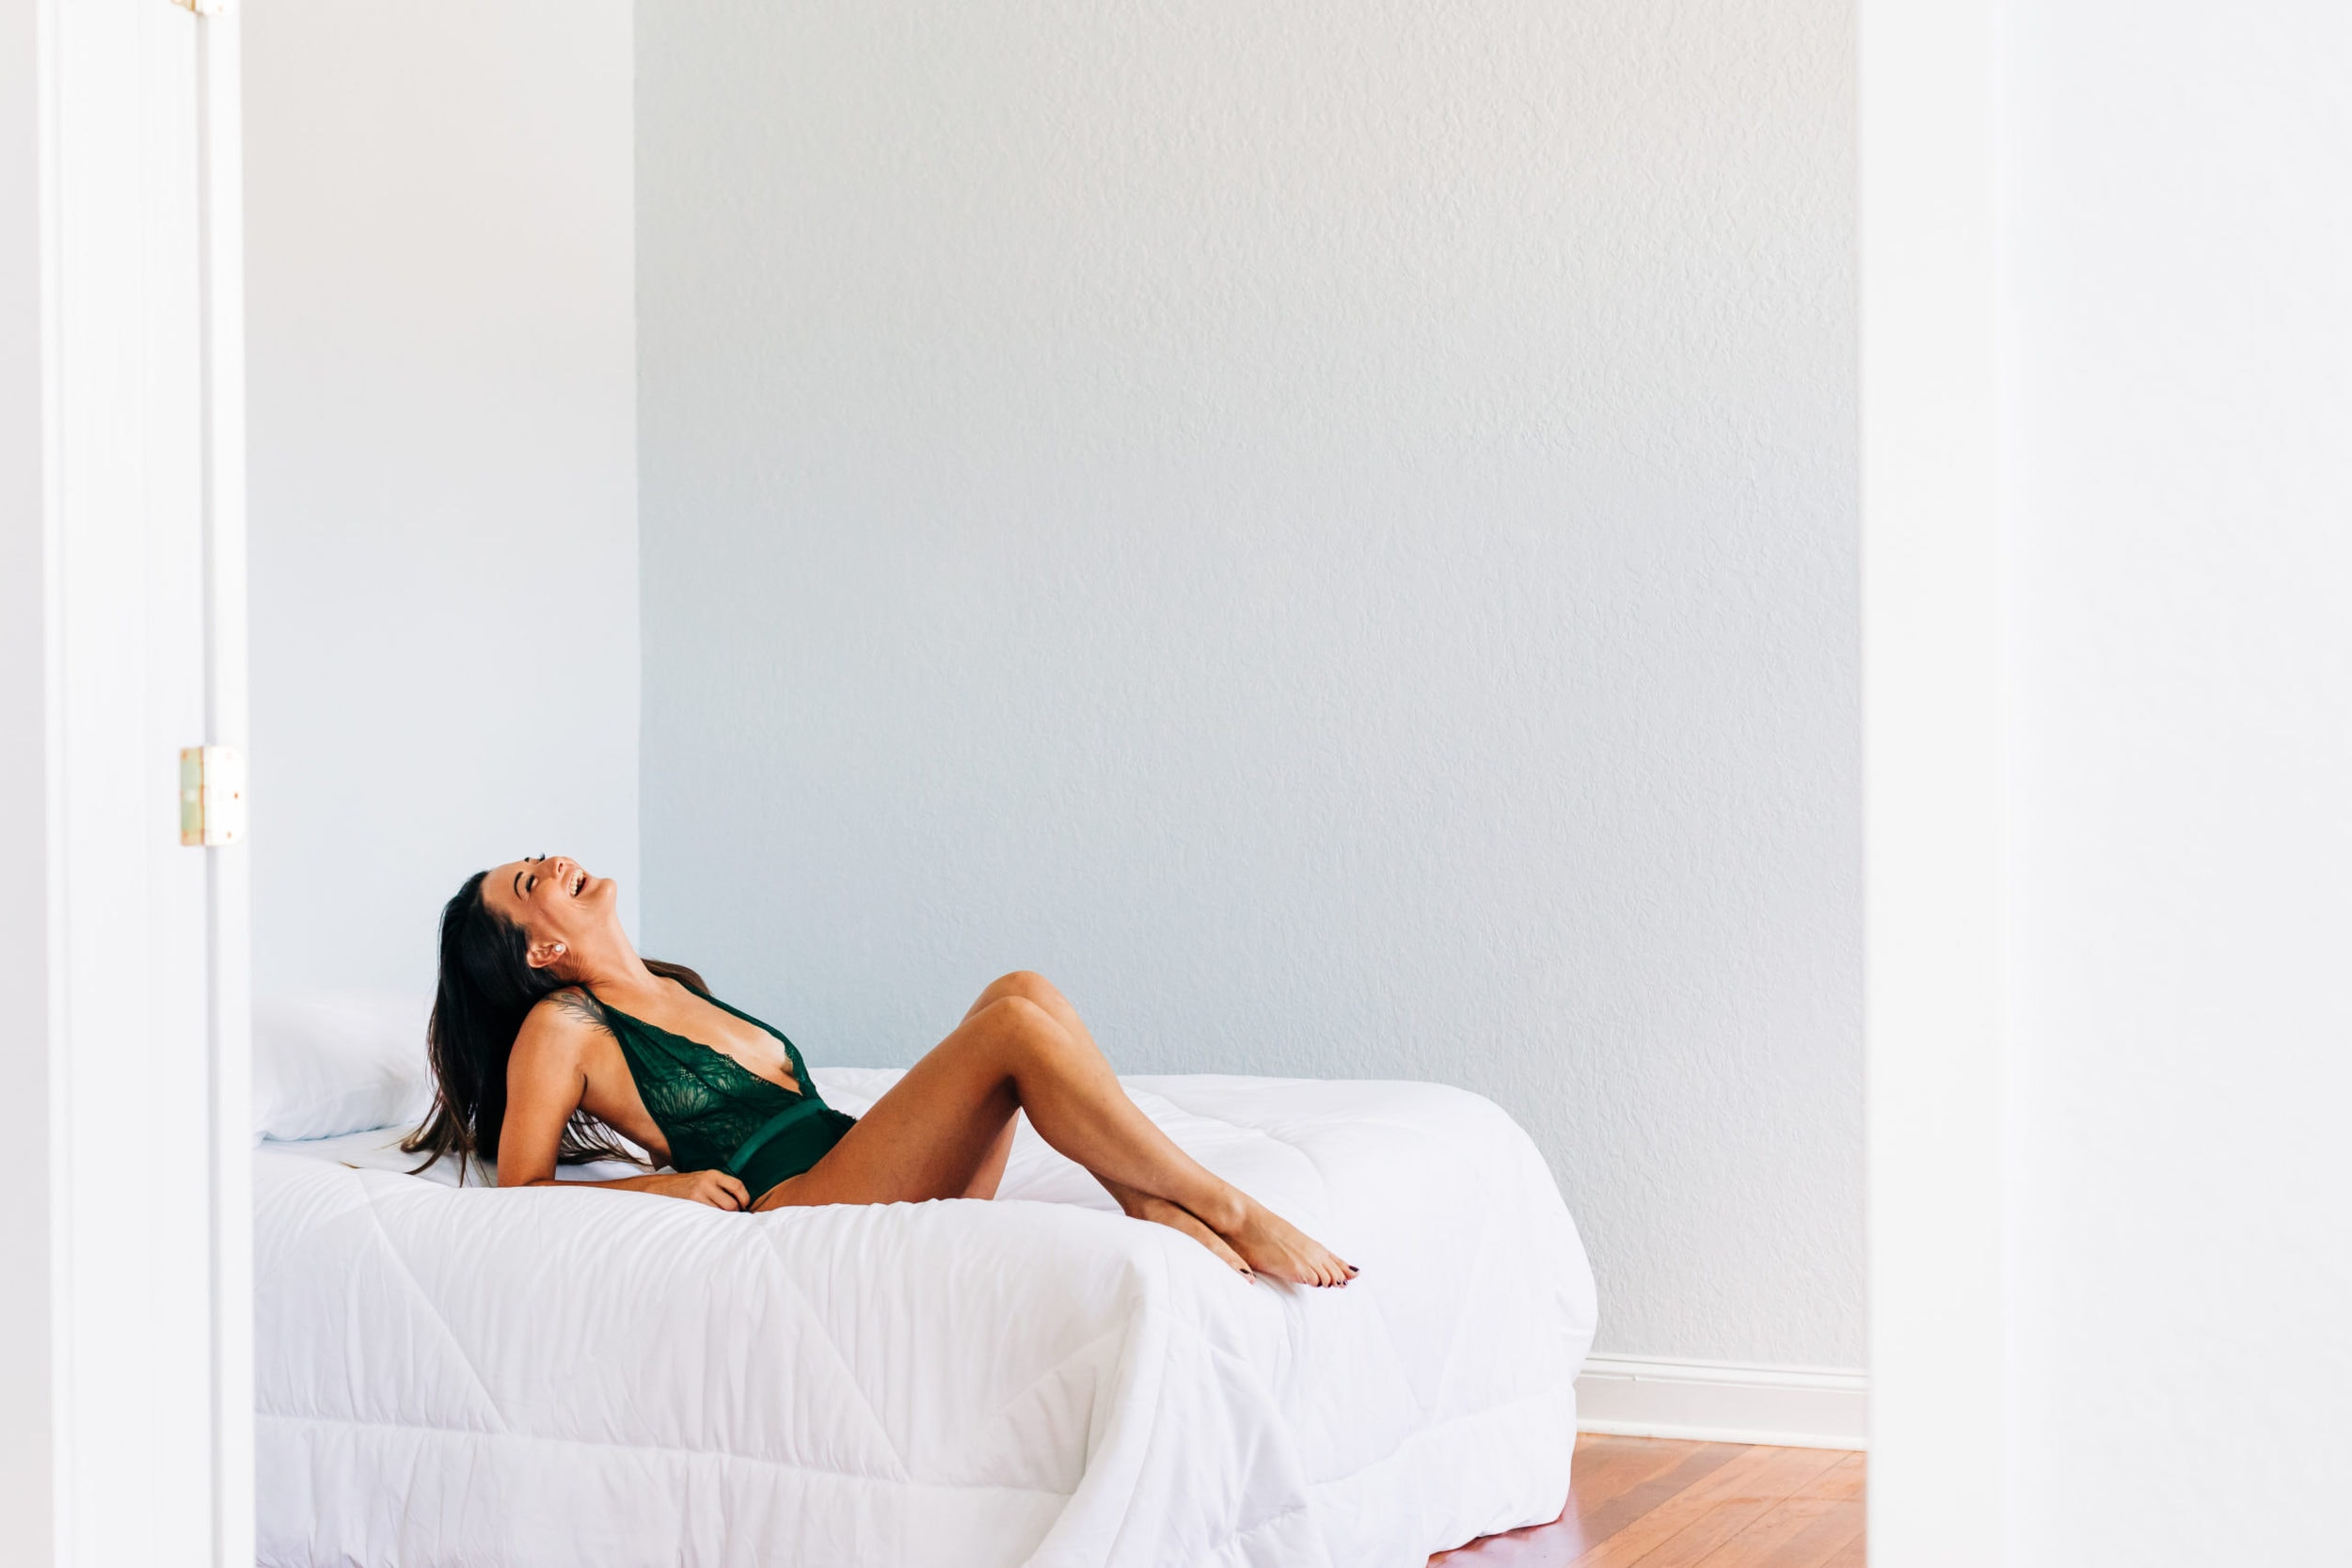 woman in green lingerie laughing in bed